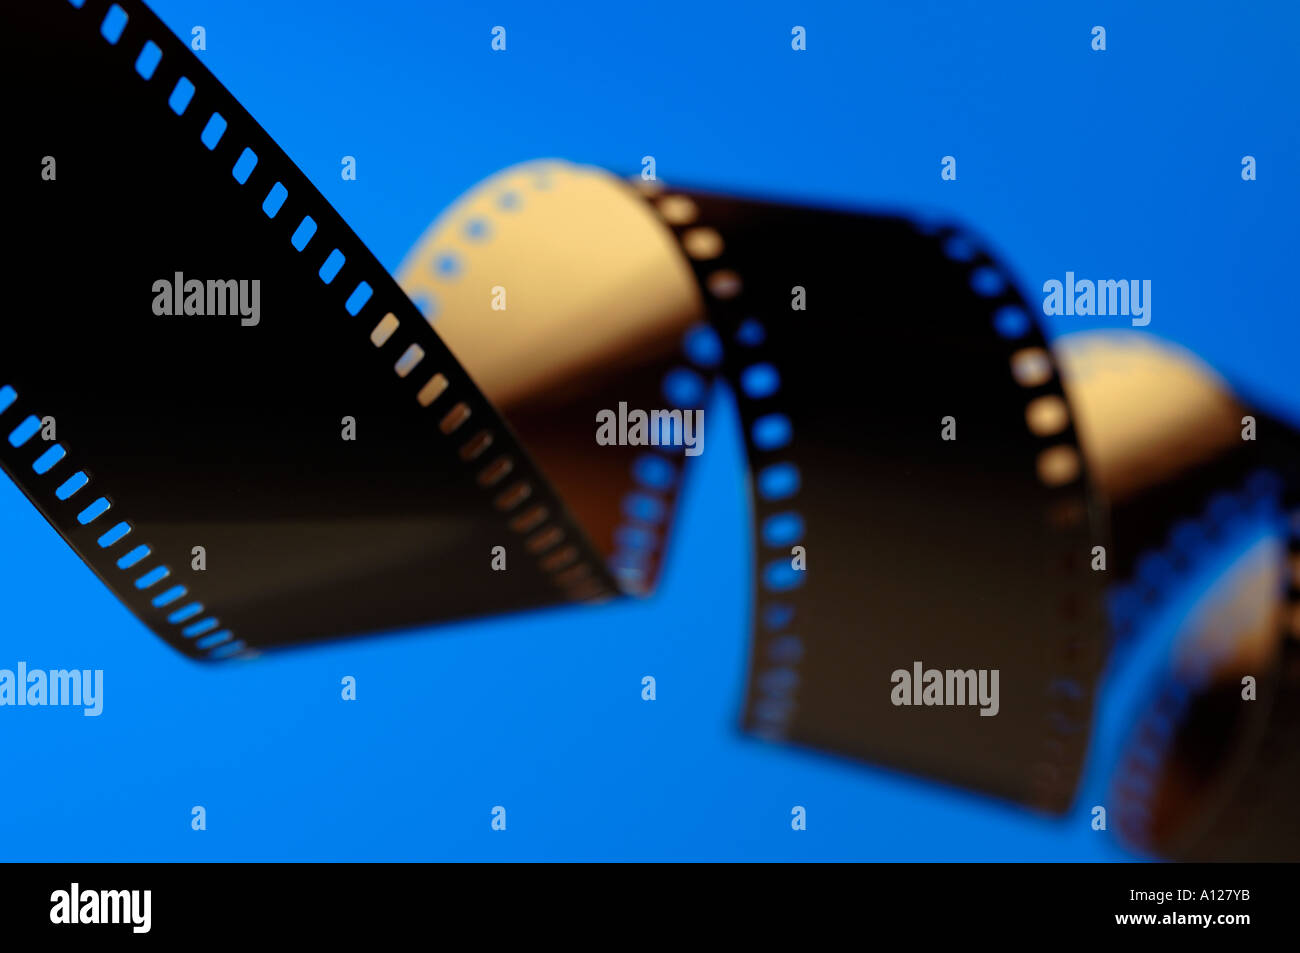 Strip of 35mm photo film - Stock Image